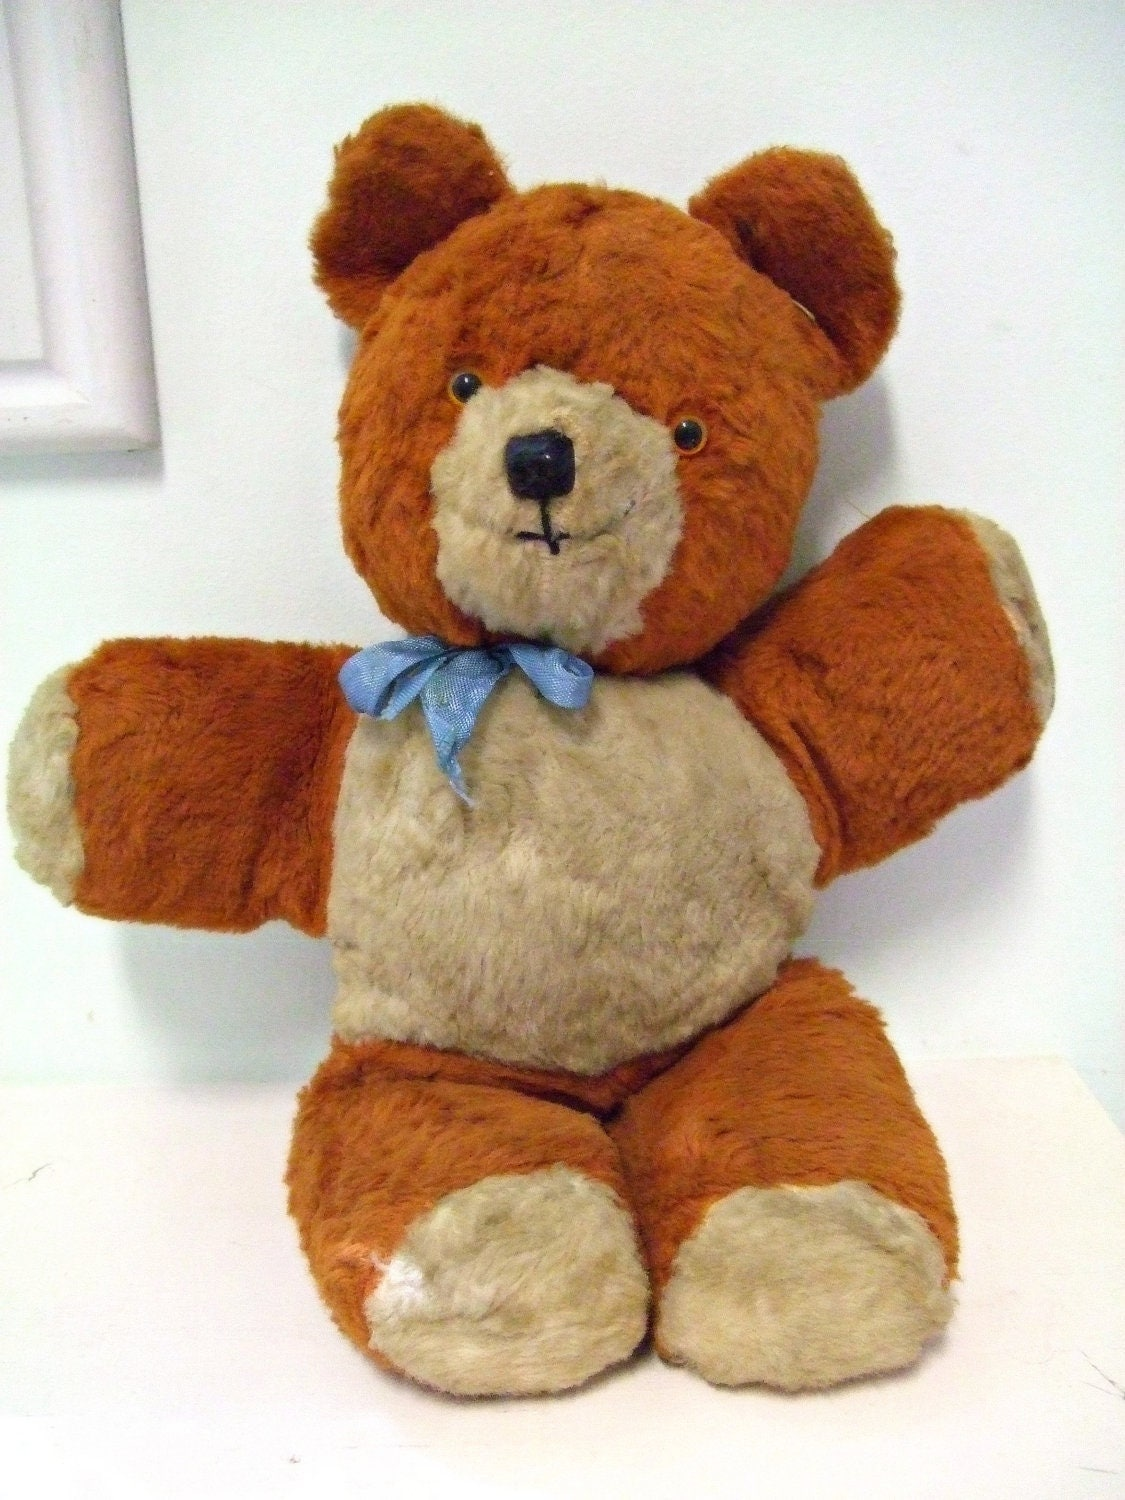 Australian Made Teddy Bears Vintage Teddy Bear 1950s 1960s Wood Wool By Teddiesandvintage